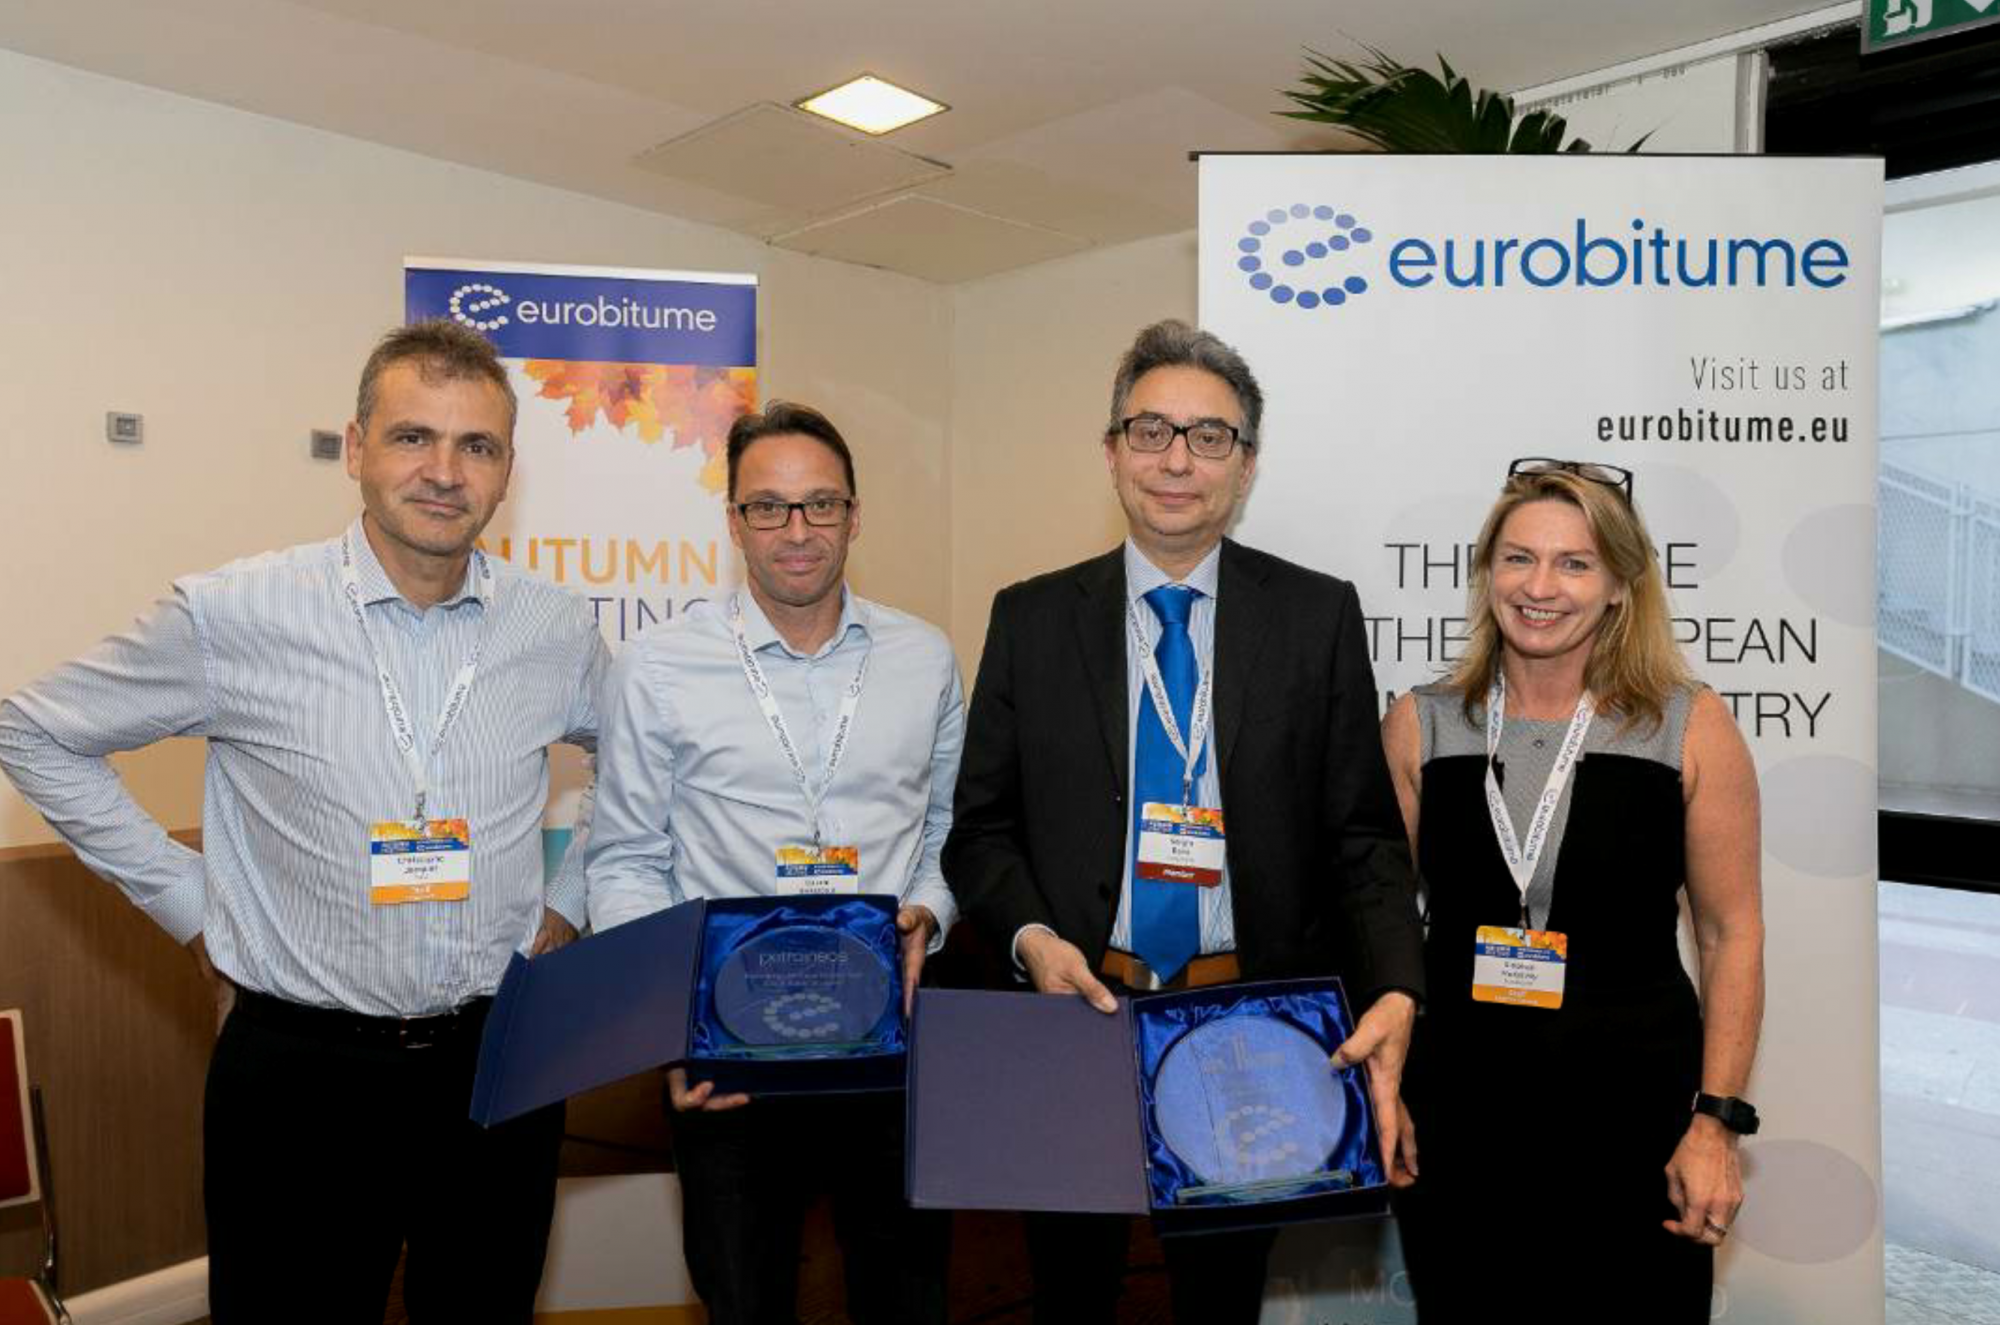 From left to right, Gacem Benazzouz from Petroineos and Sergio Bovo from Alma Petroli are welcomed into the Eurobitume family by Jacquet and McKelvey.